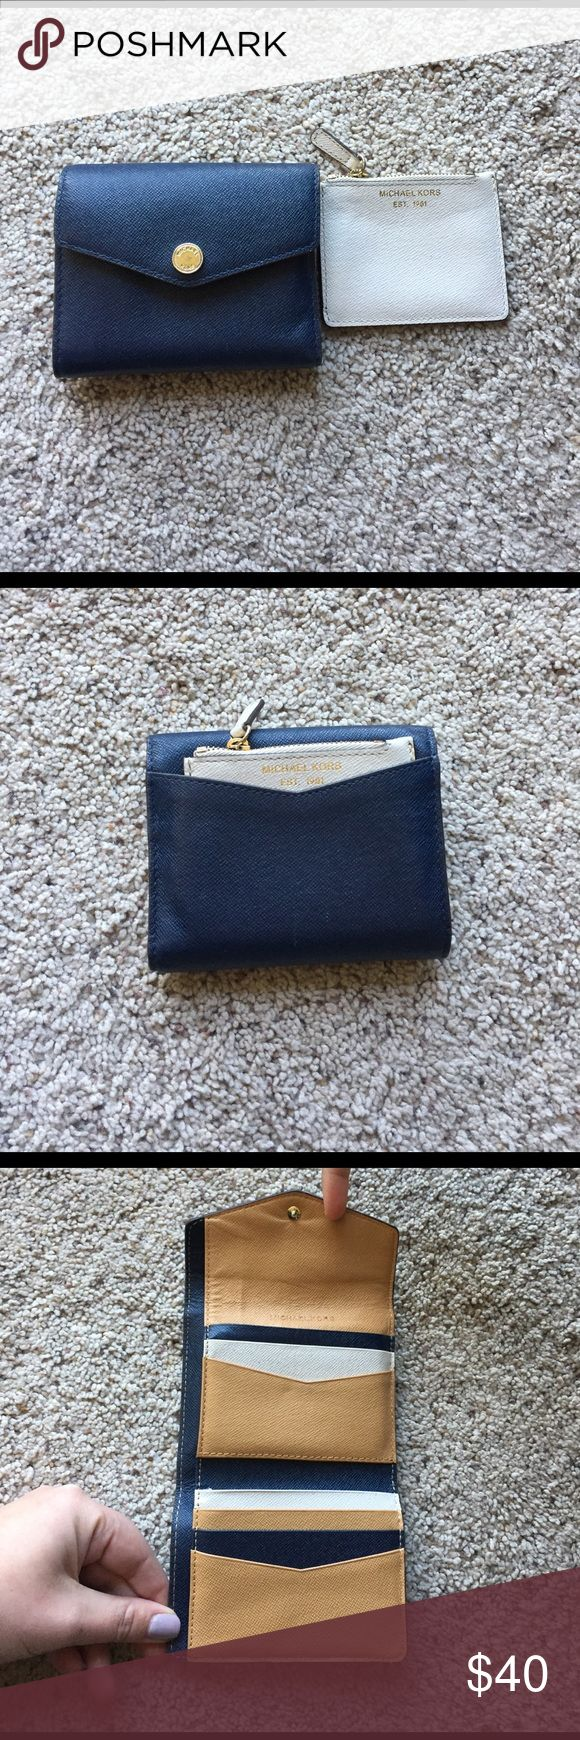 Michael Kors navy, white and tan wallet! Almost new Michael Kors wallet + coin purse! This wallet is seriously so cute. It is a deep navy blue and the inside has a tri-color card holding area. Michael Kors Bags Wallets